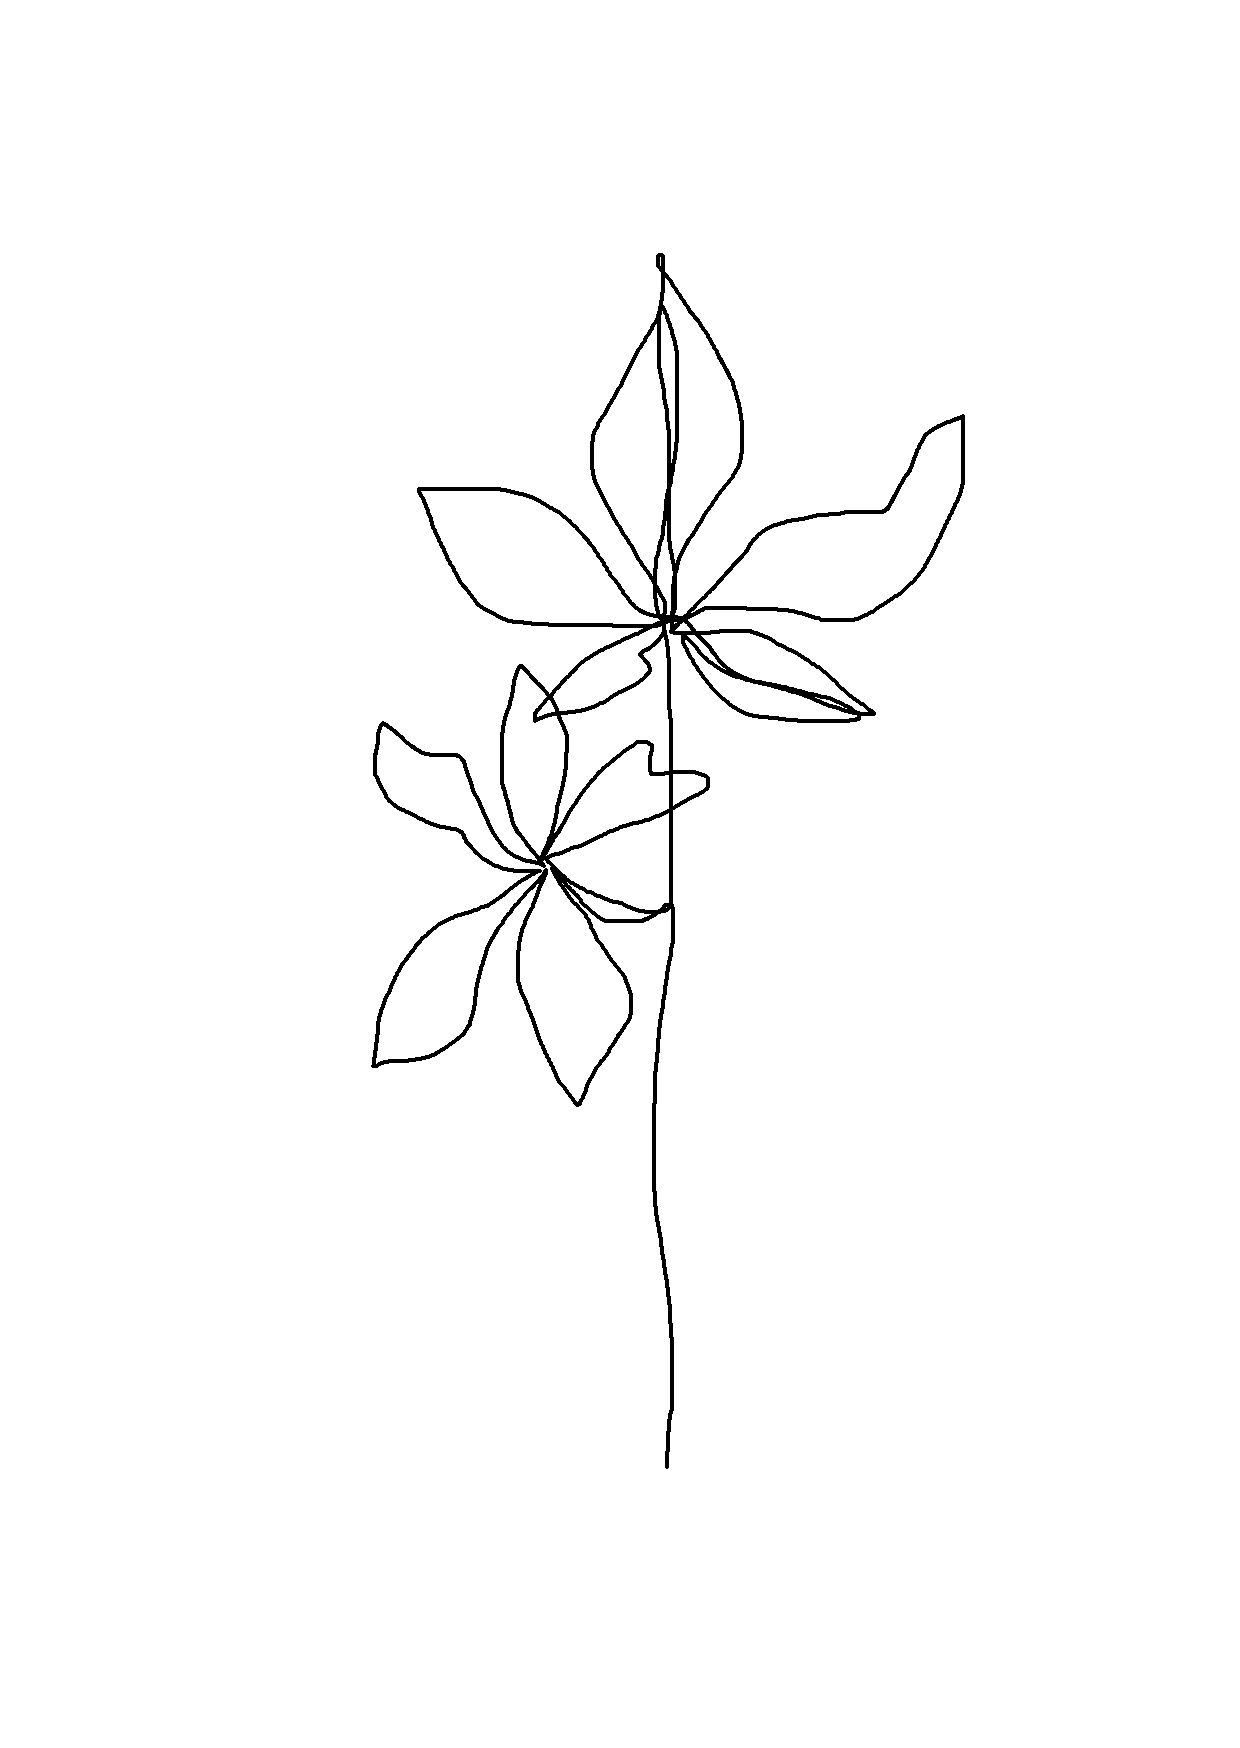 Flower Leaf Line Drawing : Pin by kristin cervo on gift shit in pinterest